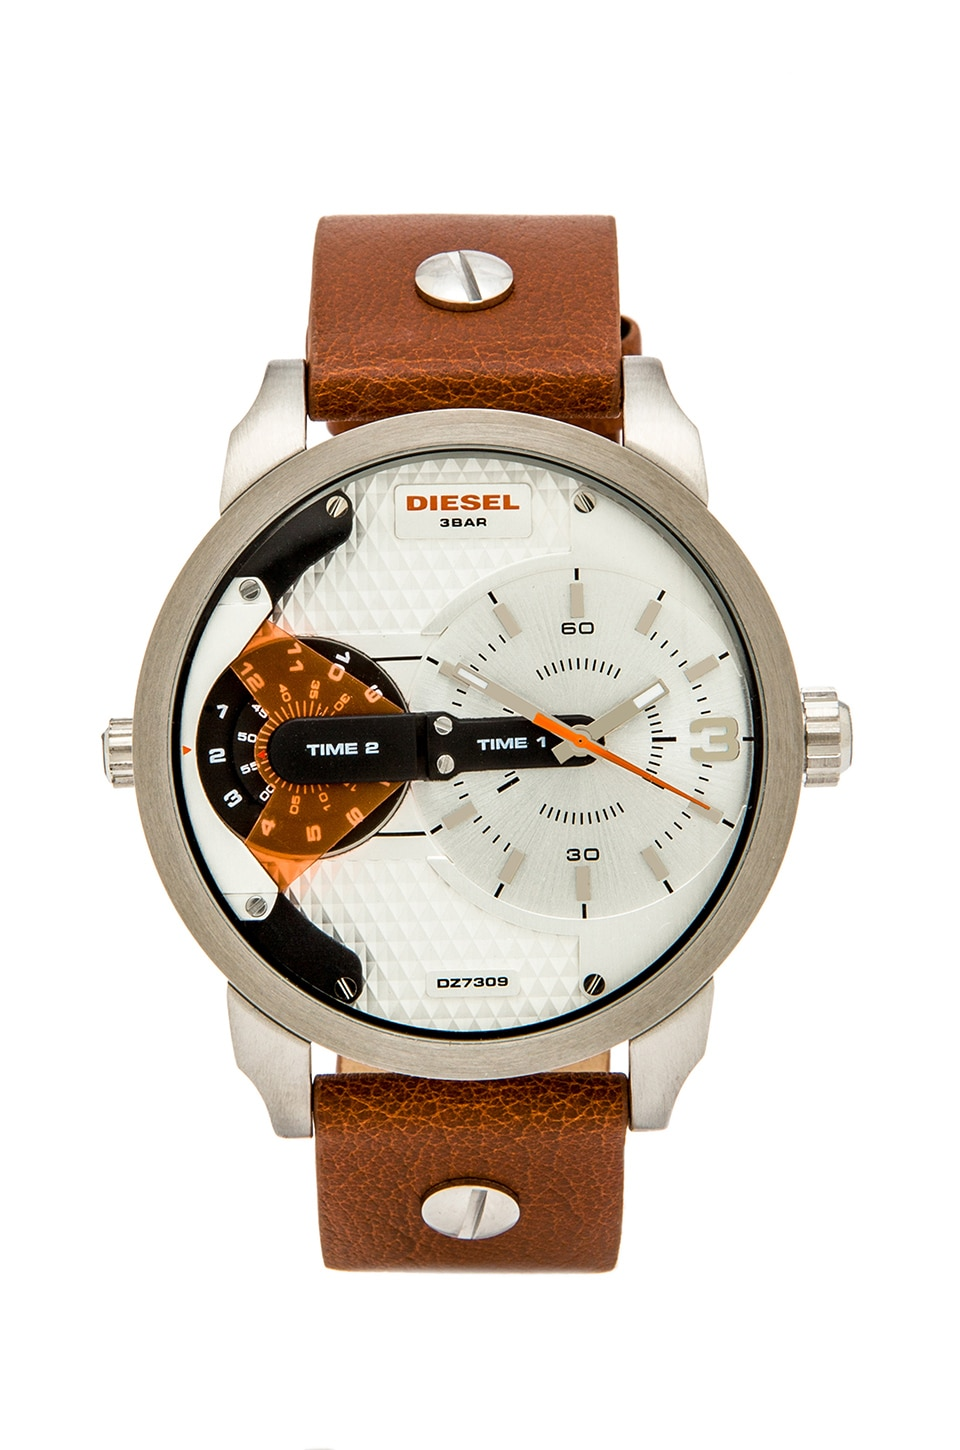 Diesel DZ7309 in Brown & Silver